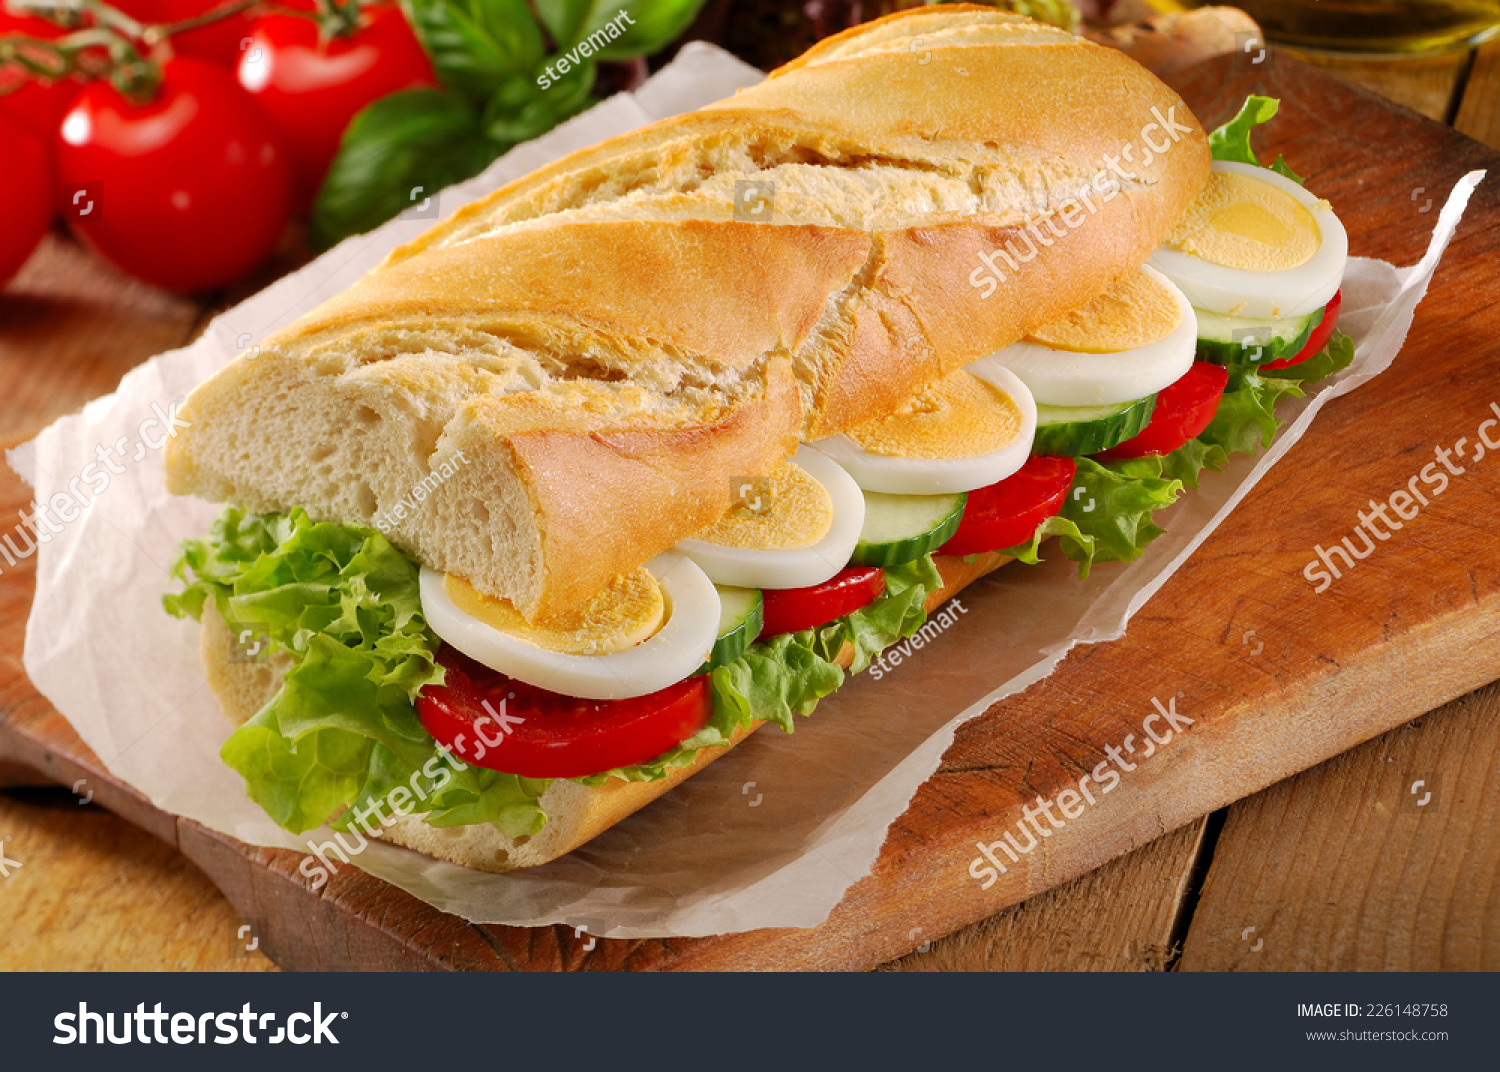 Egg Salad Sandwich On French Bread Baguette. Stock Photo ...